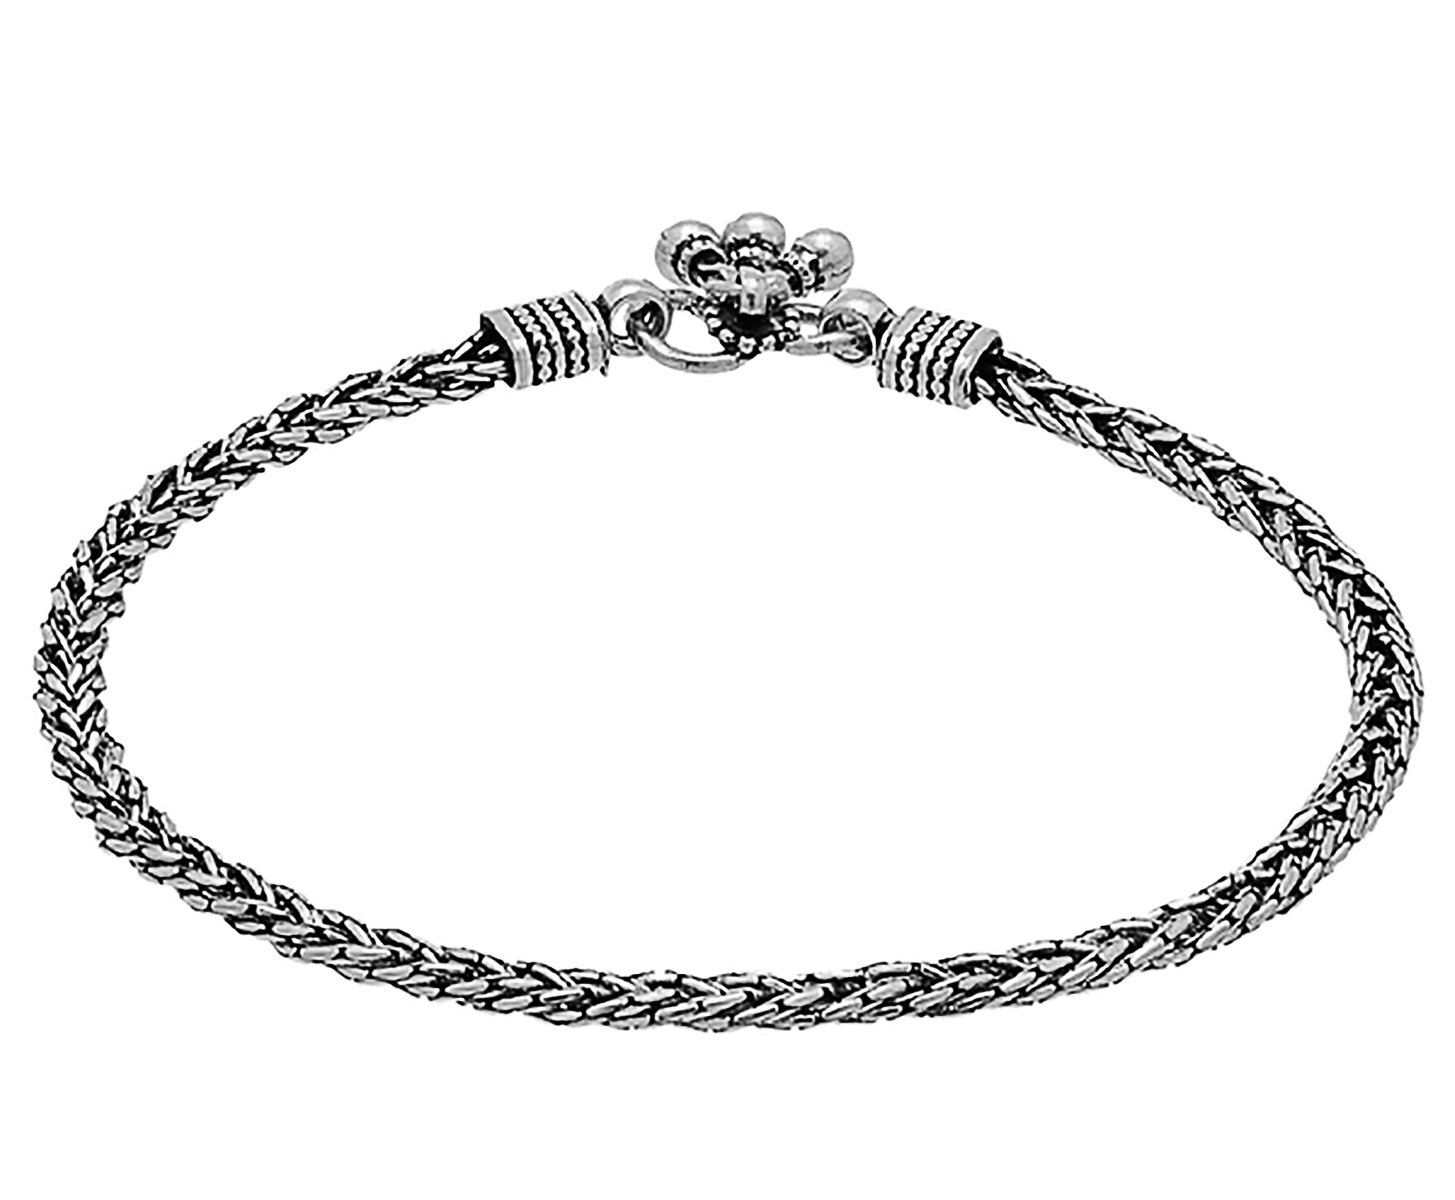 D&D Crafts MODERN STERLING SILVER ANKLET WITH OXIDIZED SILVER PLATING For Women, Girls by D&D (Image #2)